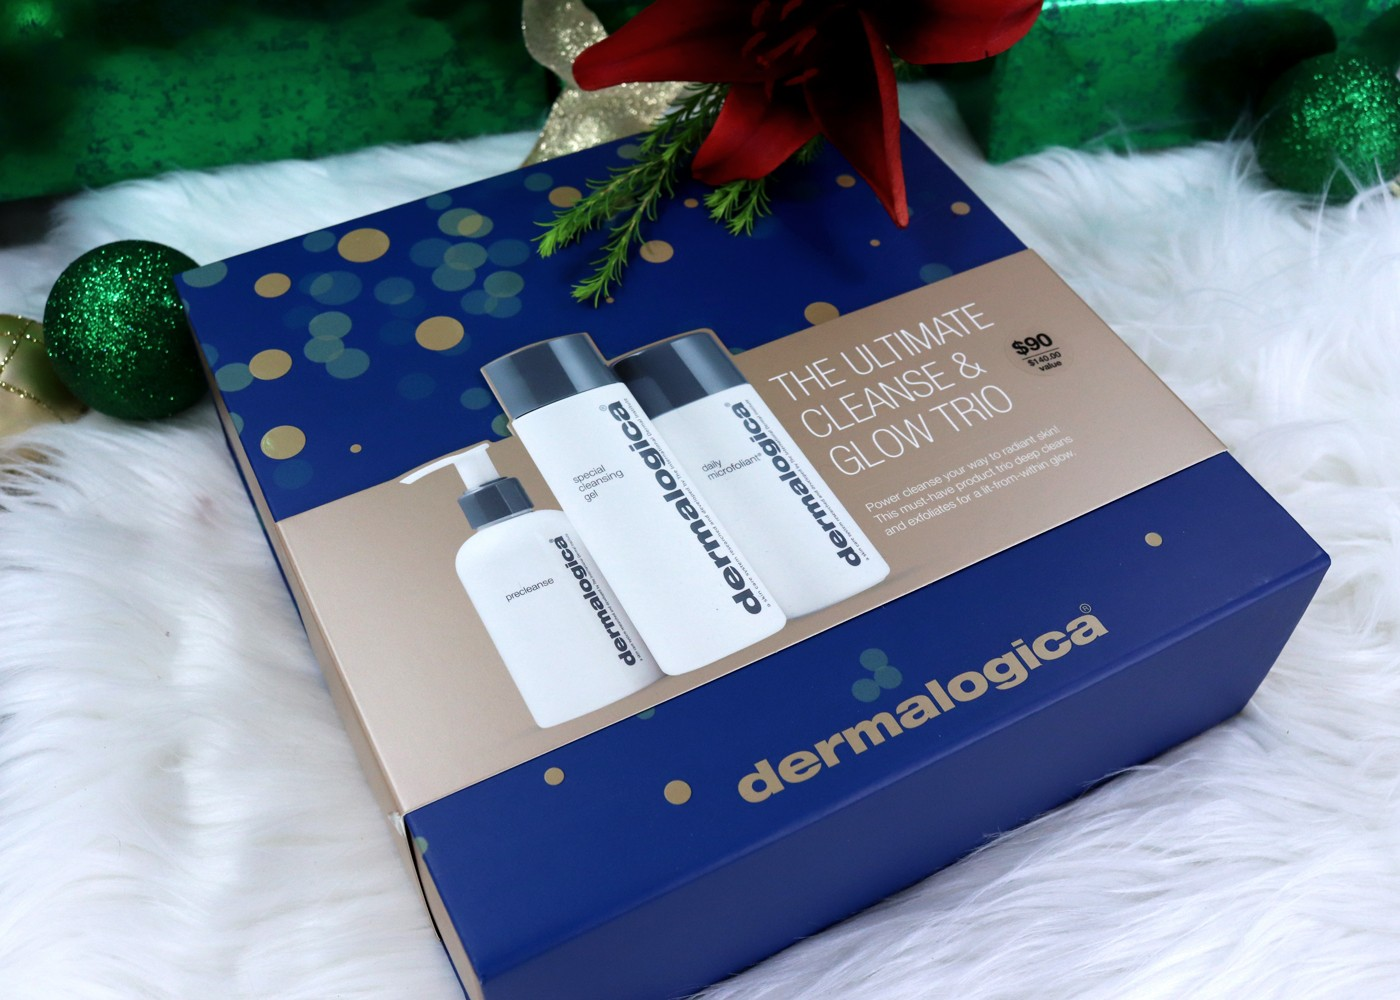 Cruelty Free Holiday Gift Guide - Dermalogica Ultimate Cleanse and Glow Gift Set